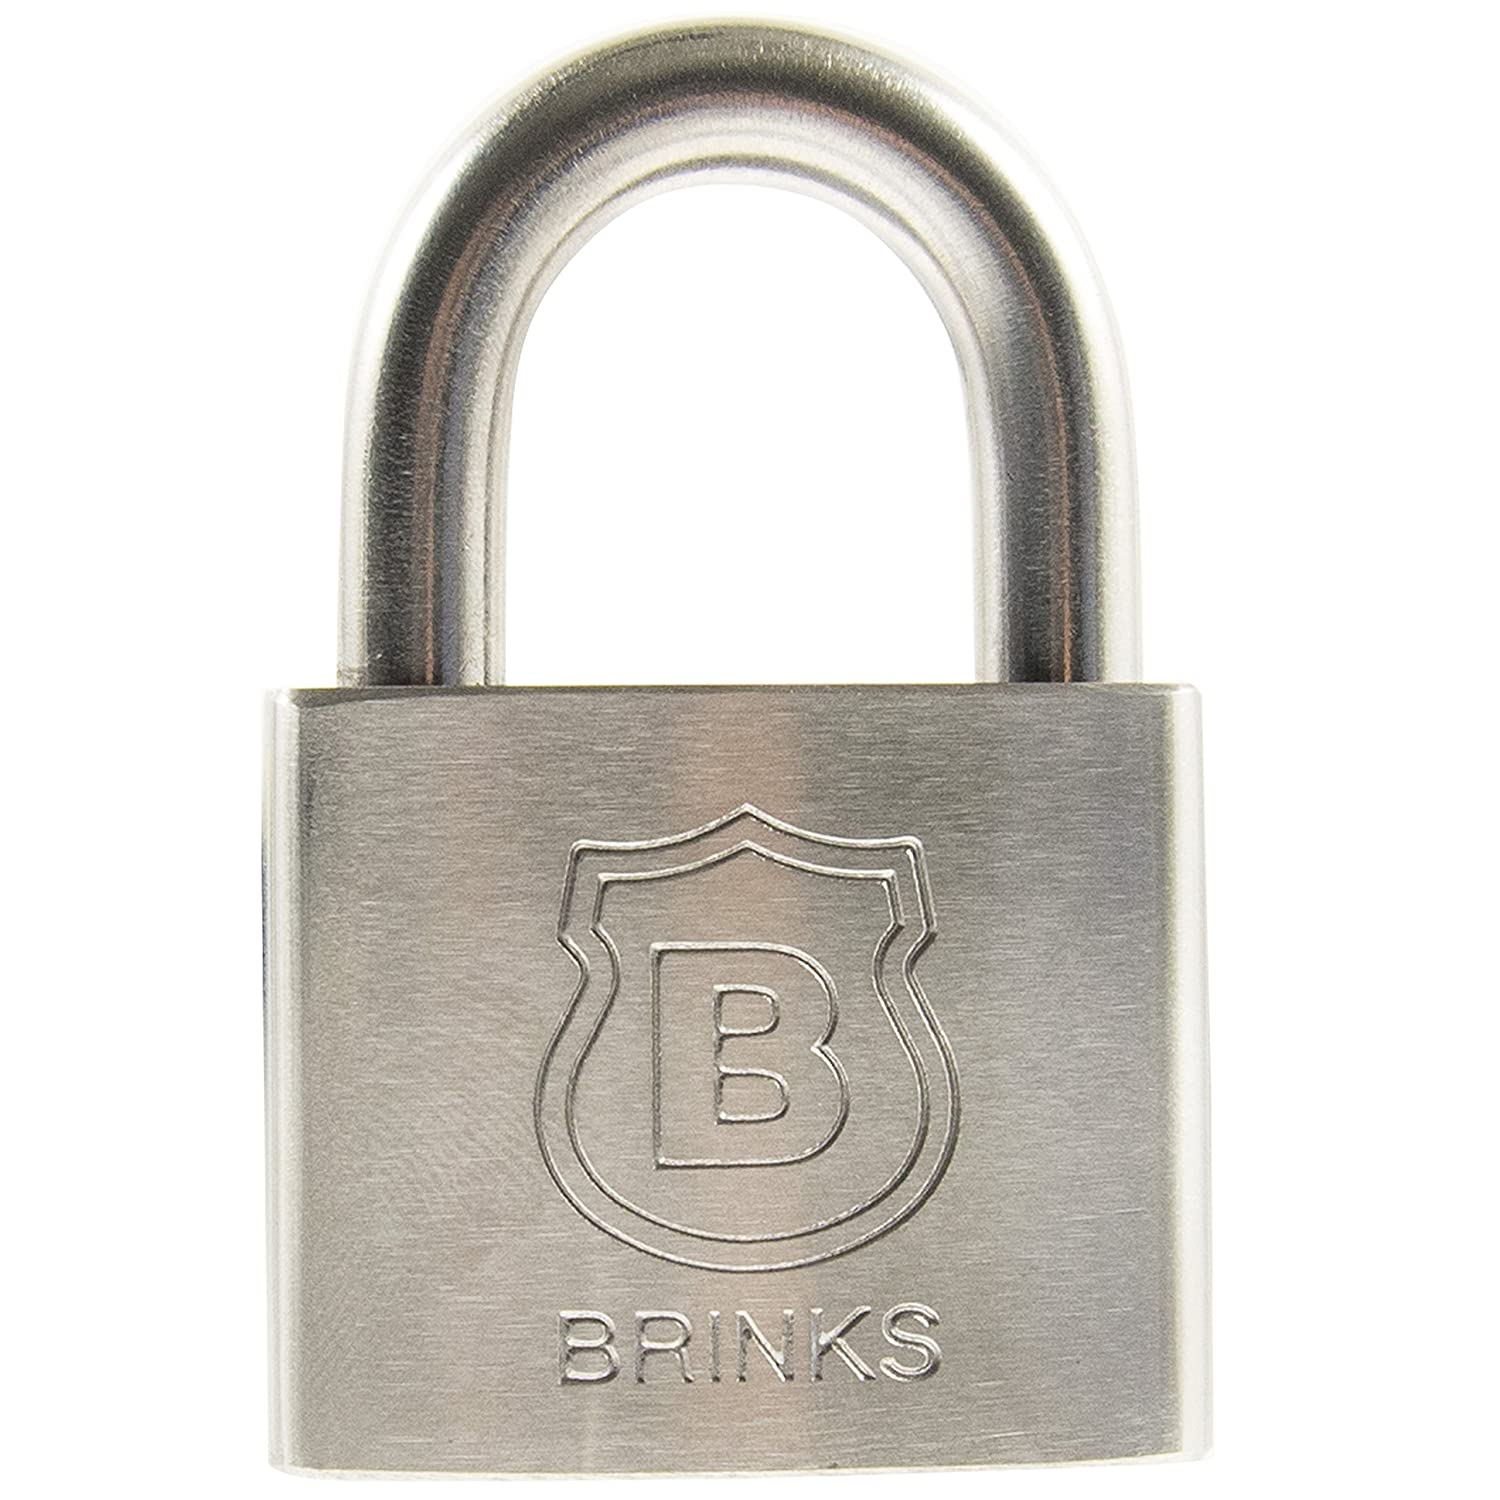 50mm Brinks 672-50811 Commercial 2 Solid Stainless Steel Padlock Hampton Products